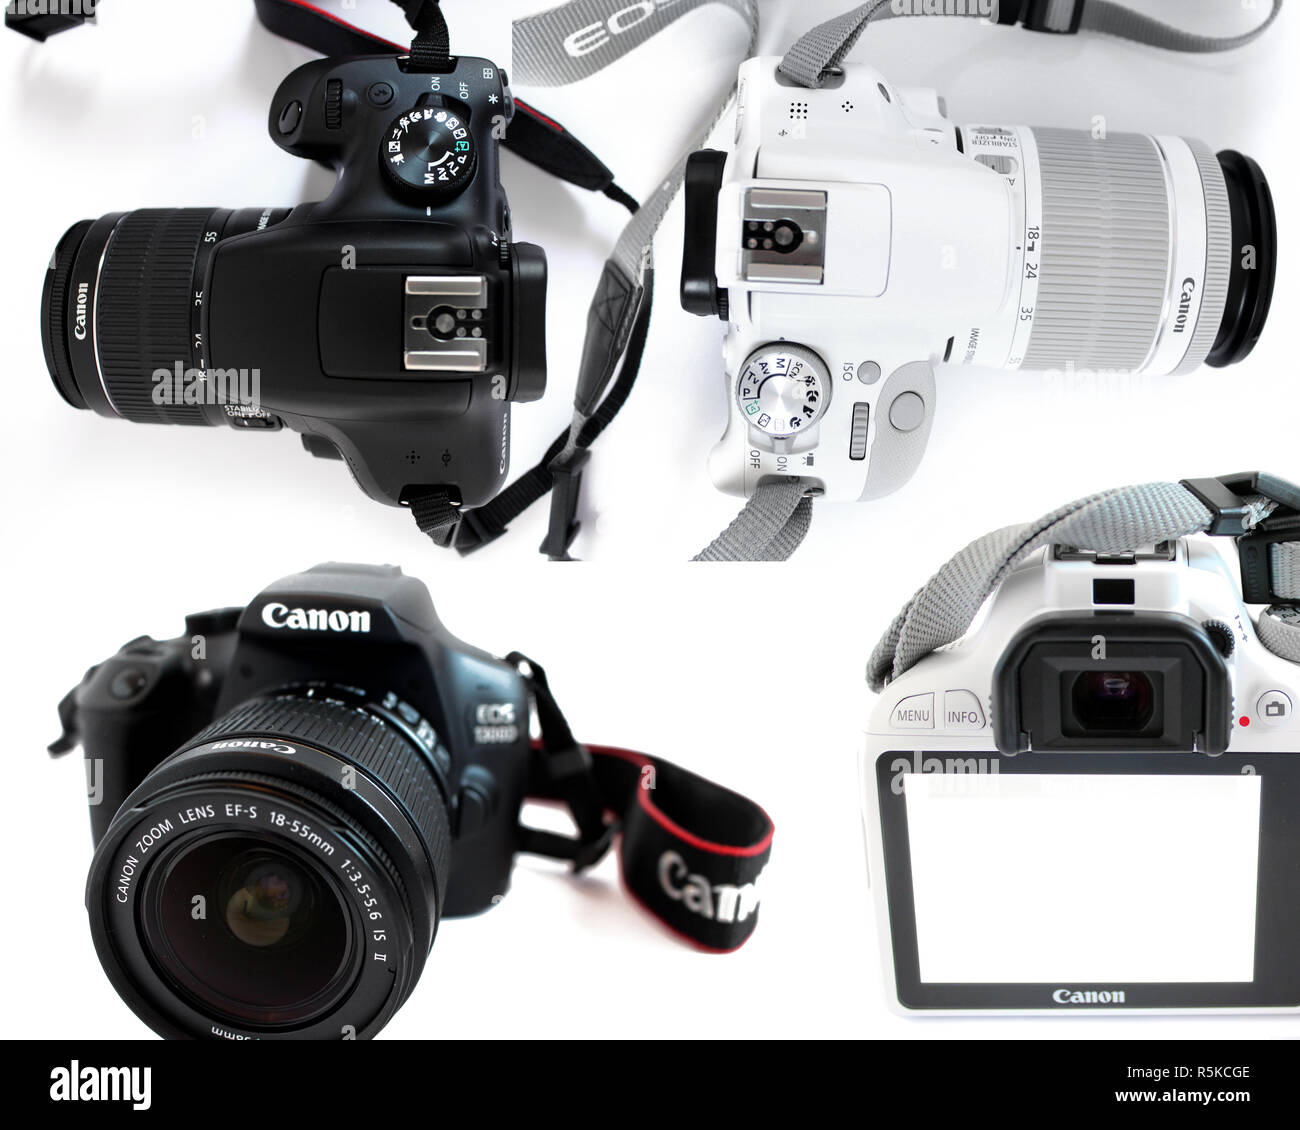 Camera Canon 1300d, Canon 100d eos, lens efs 18-55mm, black, white, editorial, illustrative - Stock Image